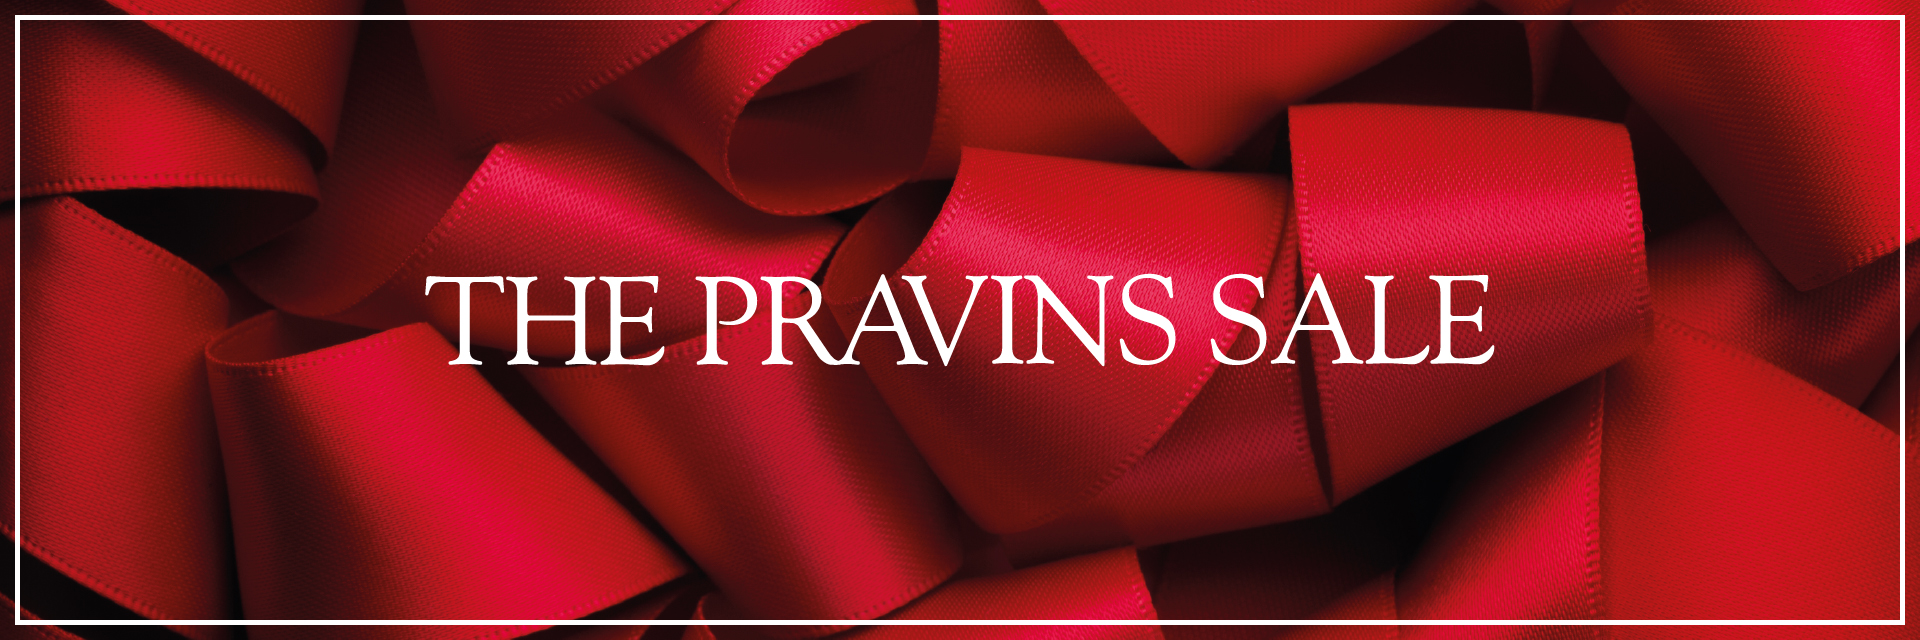 A BEAUTIFUL SELECTION OF JEWELLERY, WITH THAT SPECIAL PRAVINS TOUCH. NOW AT UP TO 50% OFF.